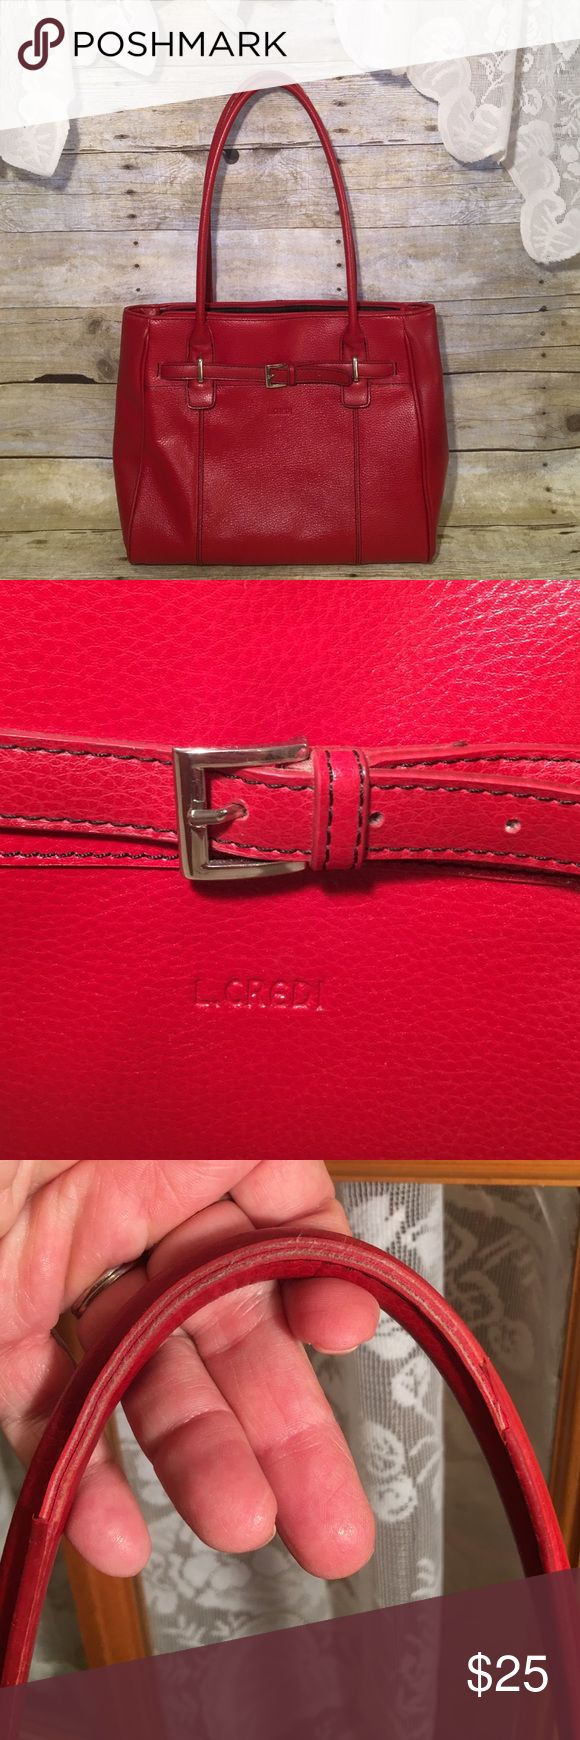 """L. Credi Deep Red Textured Leather Big Handbag 15"""" wide 11 1/2"""" high. Handle is 11"""". Can carry or use has s shoulder bag. Big single compartment. Pouch on one side, zippered pocket on the other. Other than a little wear on the strap, it is in near perfect condition. Non smoking home L. Credi Bags"""